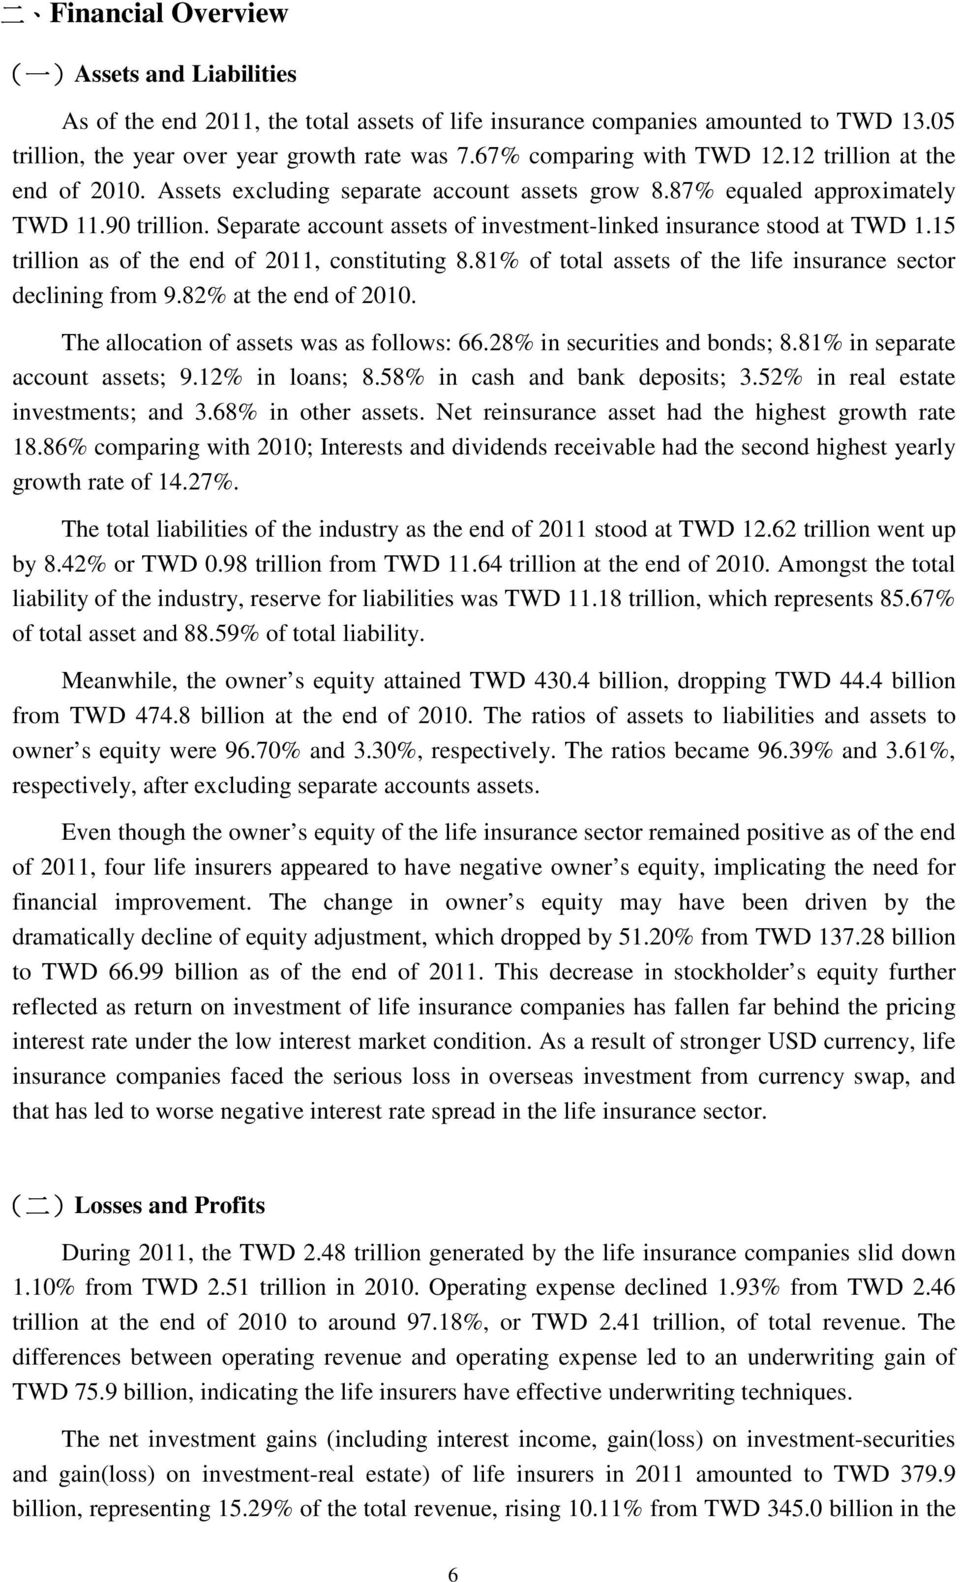 Separate account assets of investment-linked insurance stood at TWD 1.15 trillion as of the end of 2011, constituting 8.81% of total assets of the life insurance sector declining from 9.